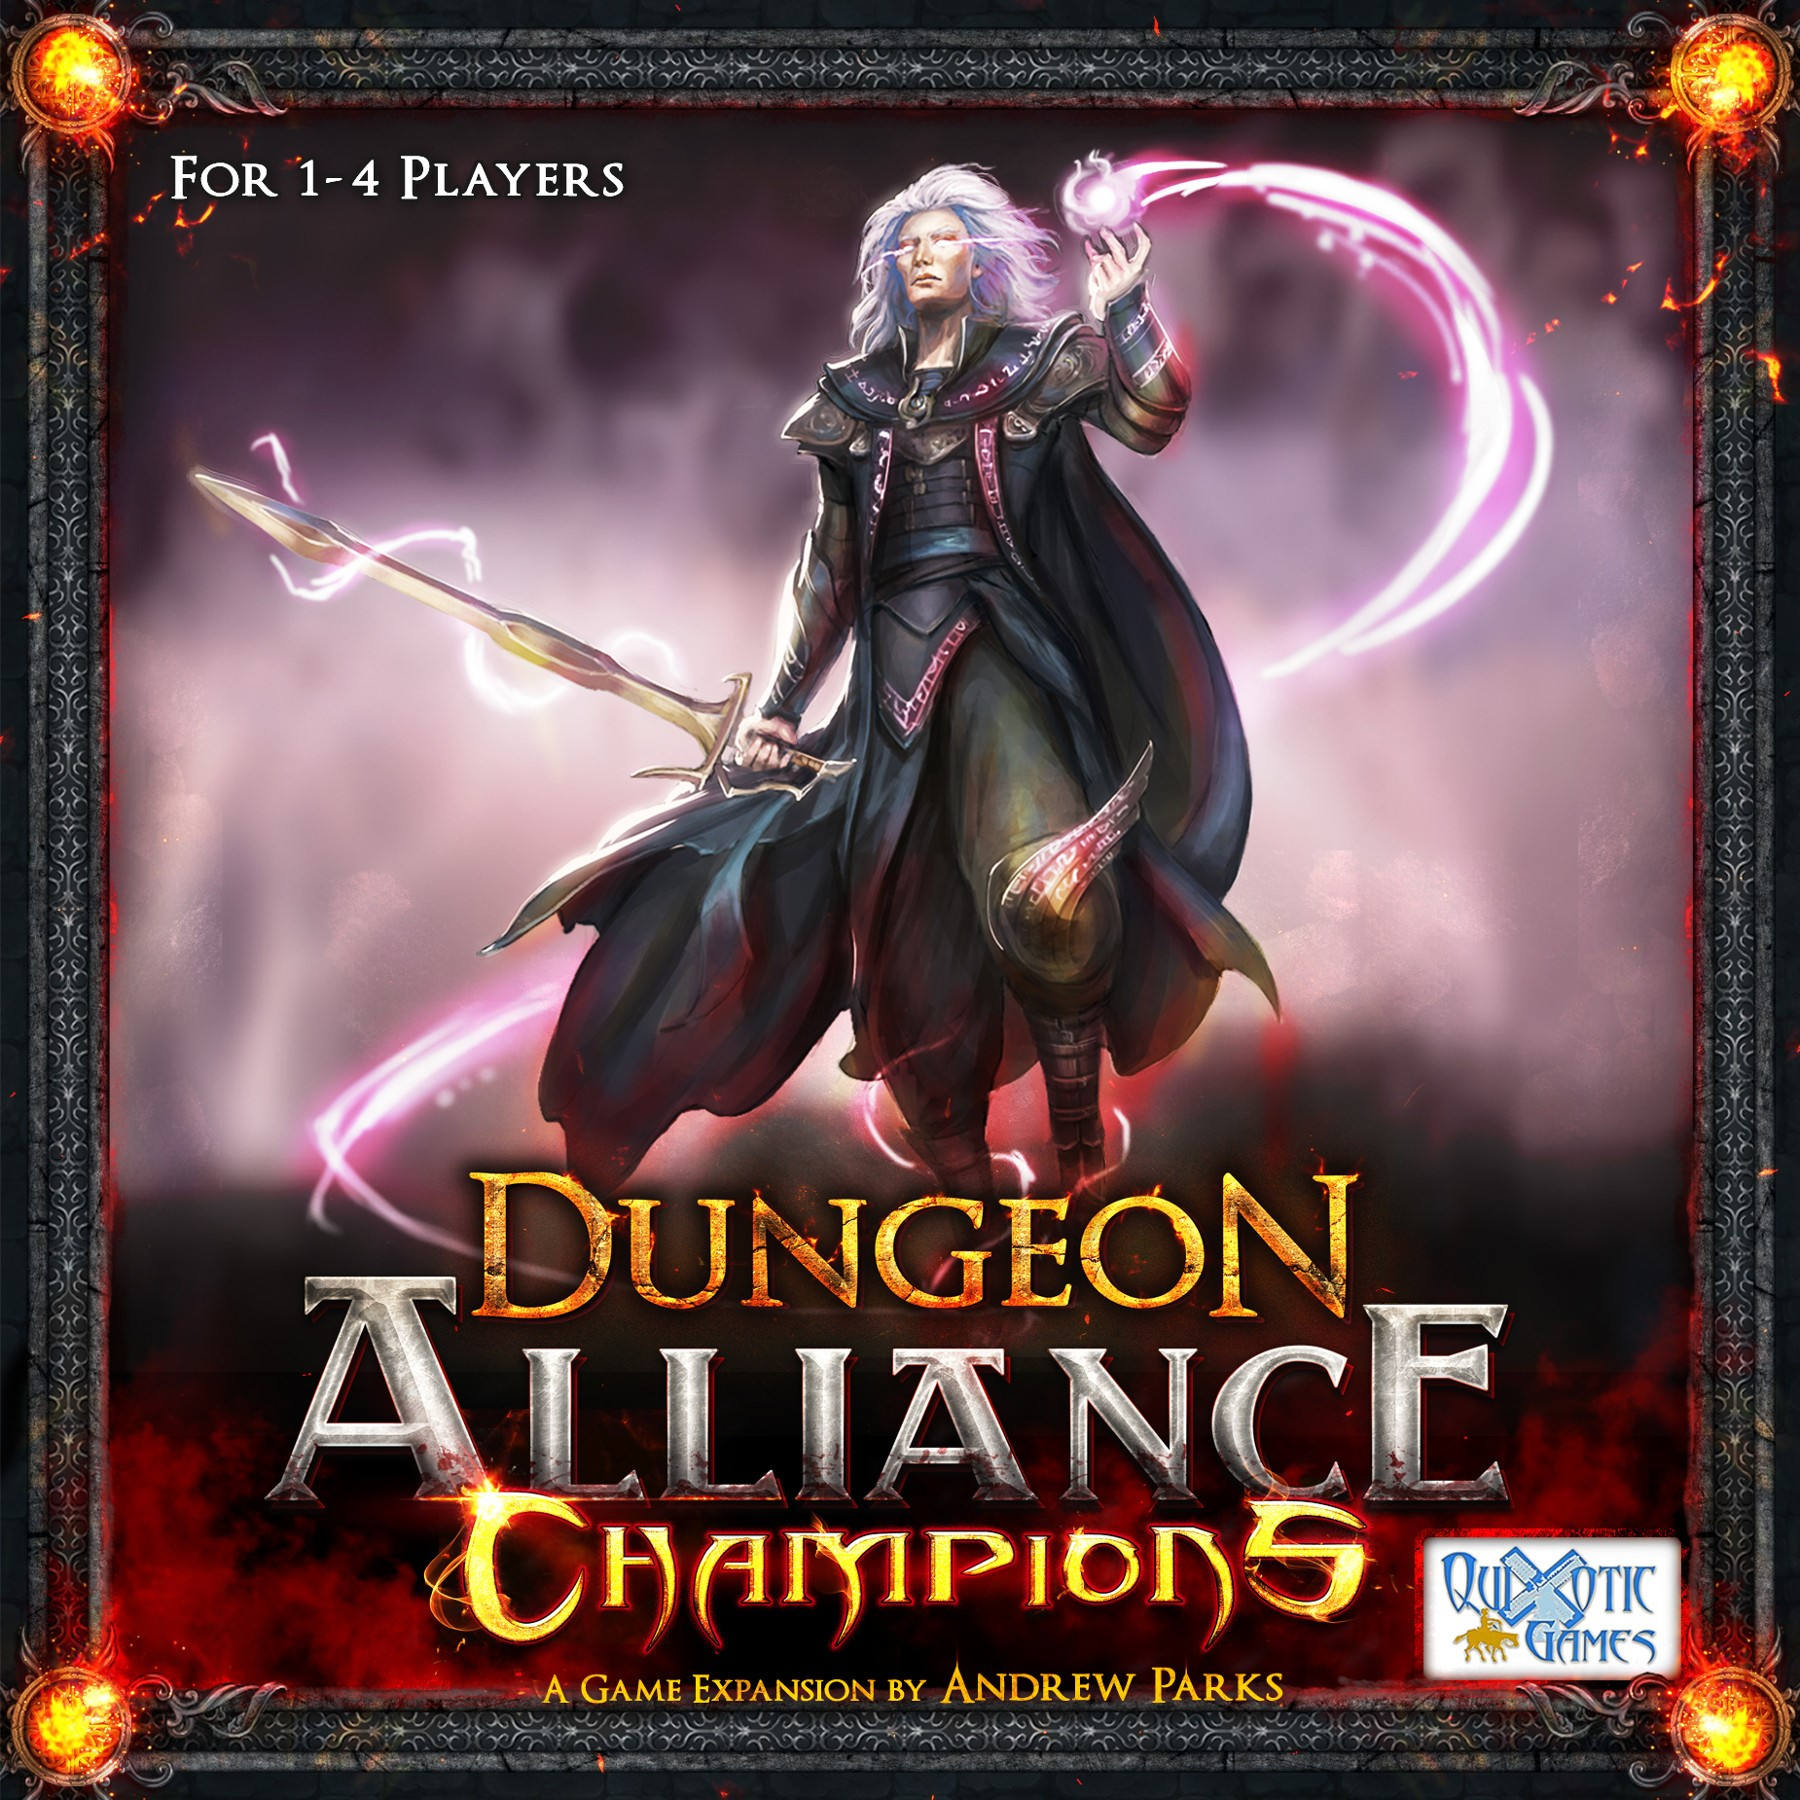 Dungeon Alliance - Champions Expansion Game Box